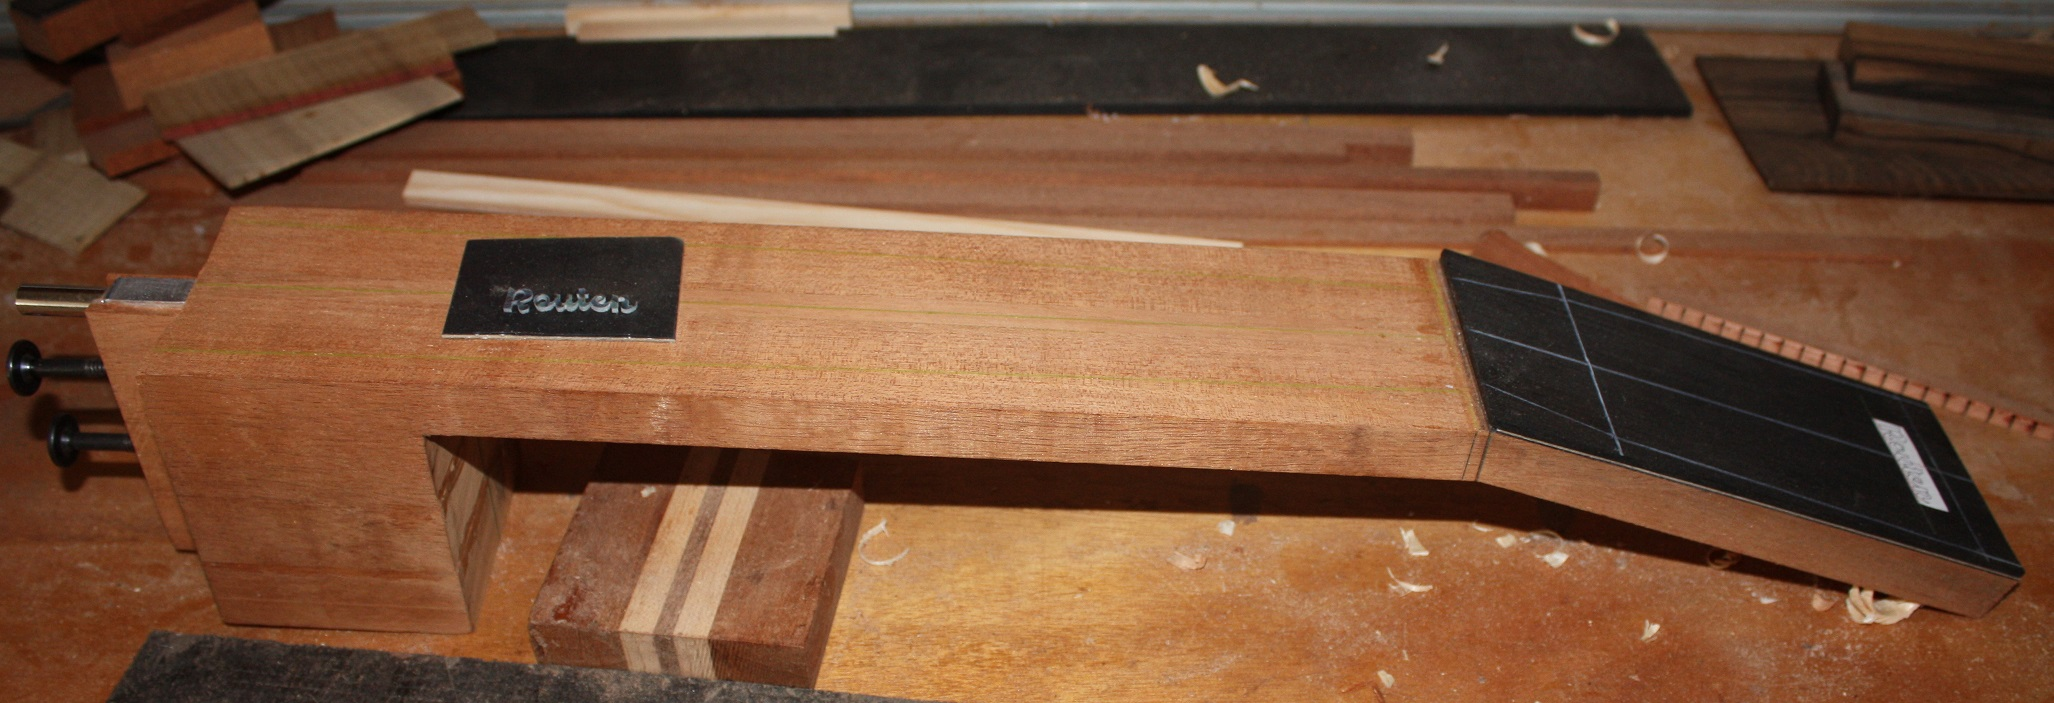 Inlaying the Routen logo in the headstock.